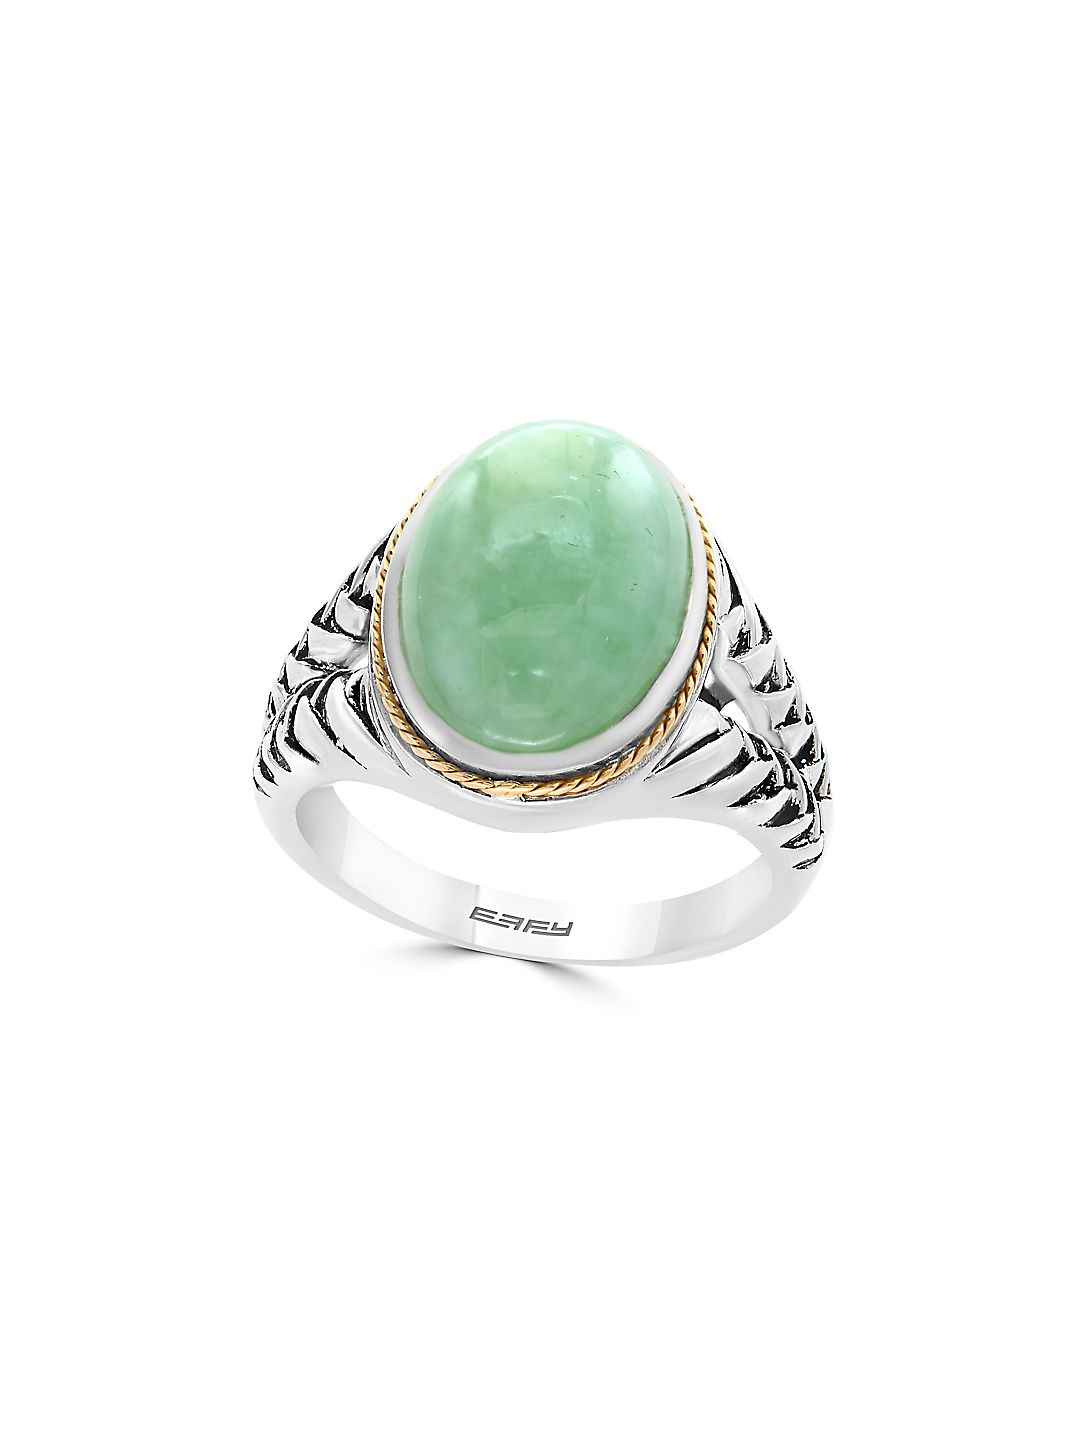 Jade and Sterling Silver Ring